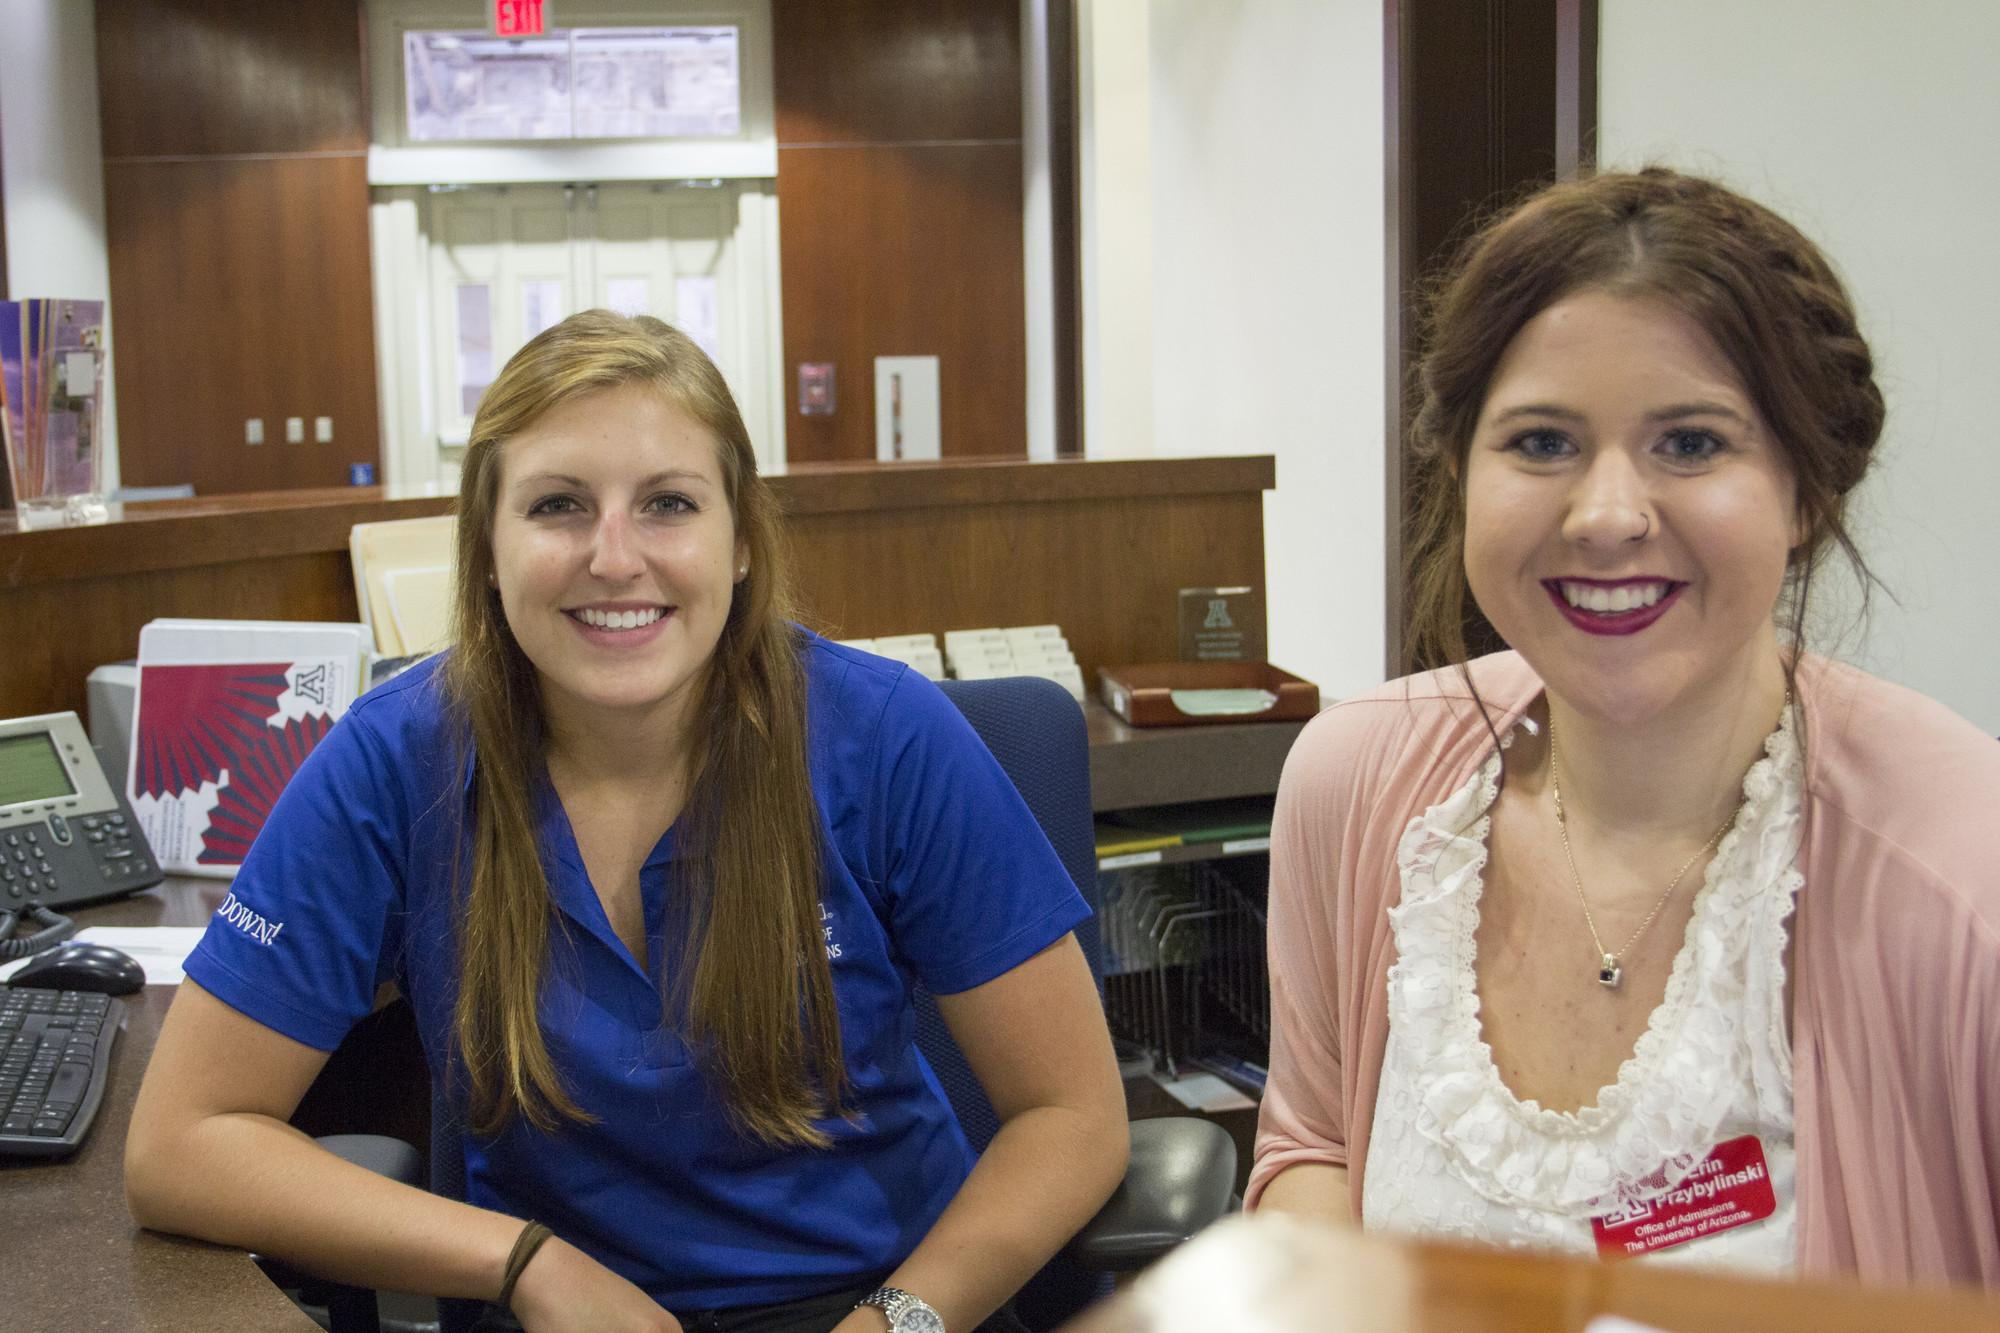 """Sept. 9, 11:56 a.m.: Riley Sullivan , a senior studying mathematics, says she previously worked at Bear Down Gym and now prefers Old Main. """"It's a beautiful place,"""" says Sullivan, who works in the Office of Admissions. Erin Przybylinski, a student in the"""